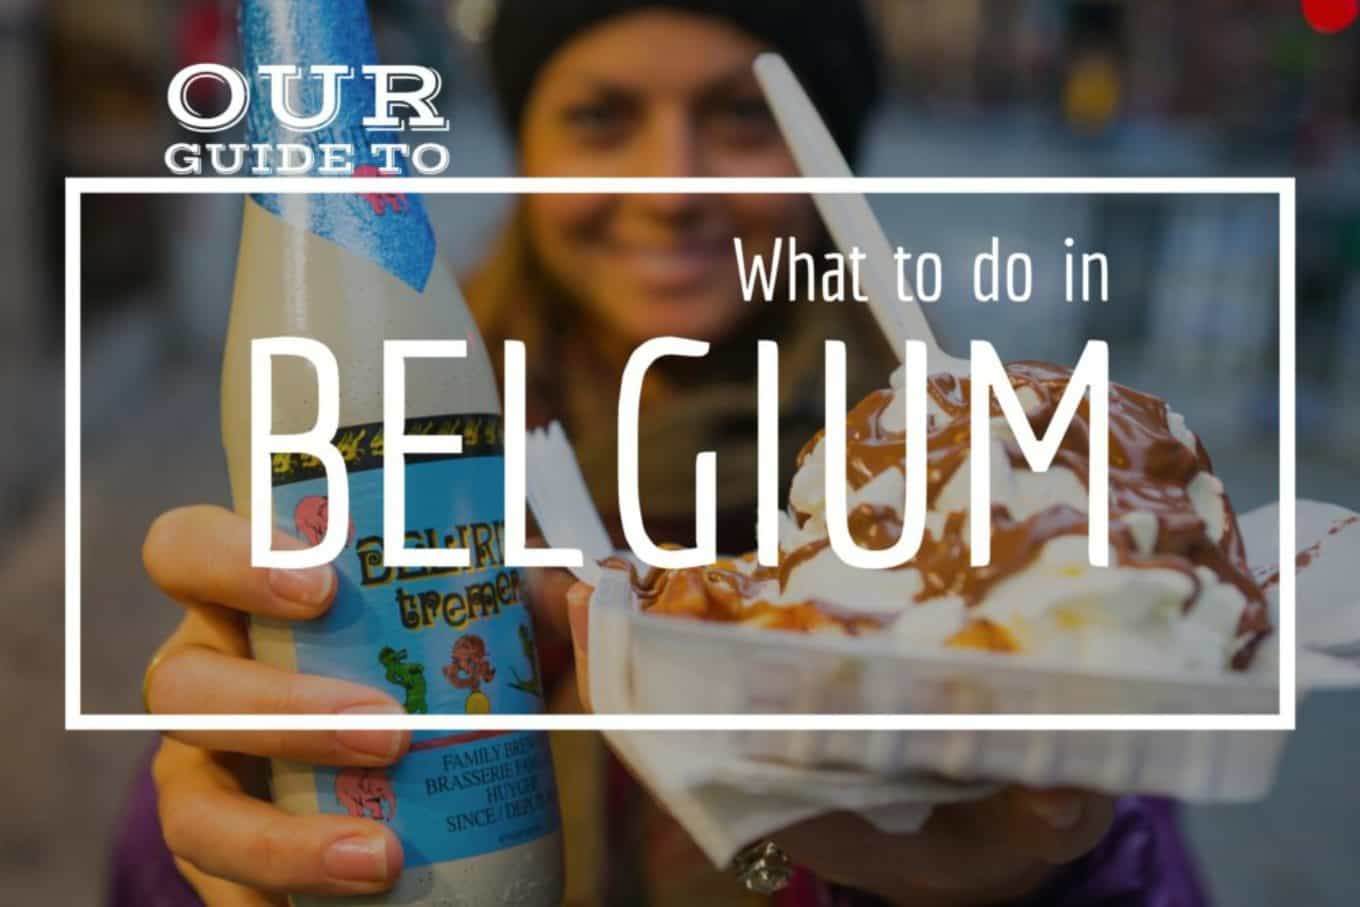 What to do in belgium and things to do in belgium